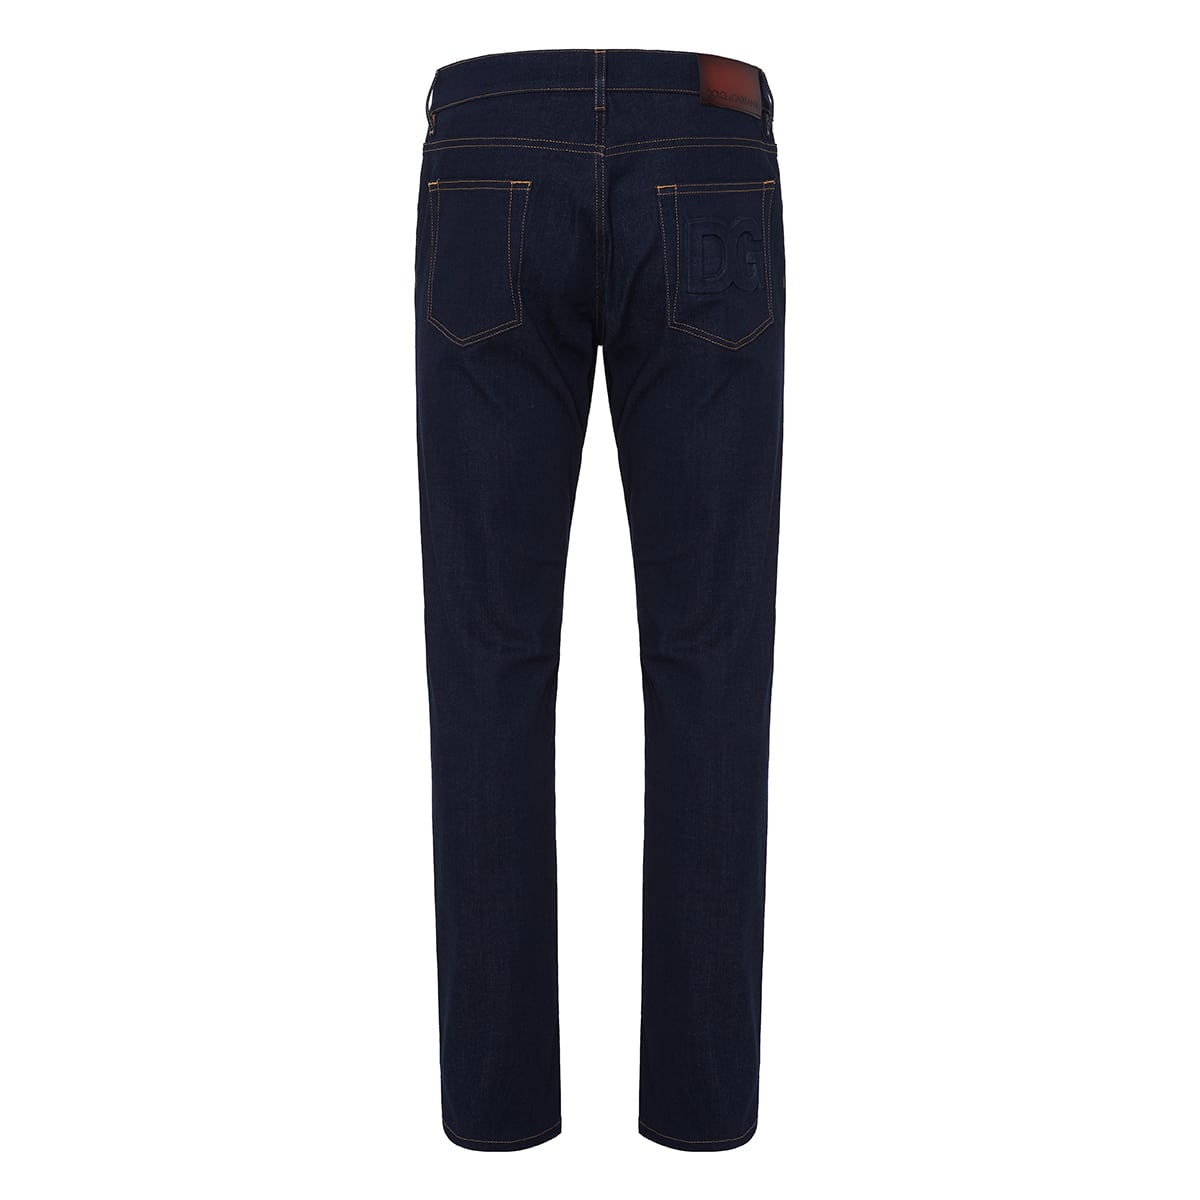 DG slim-fit jeans